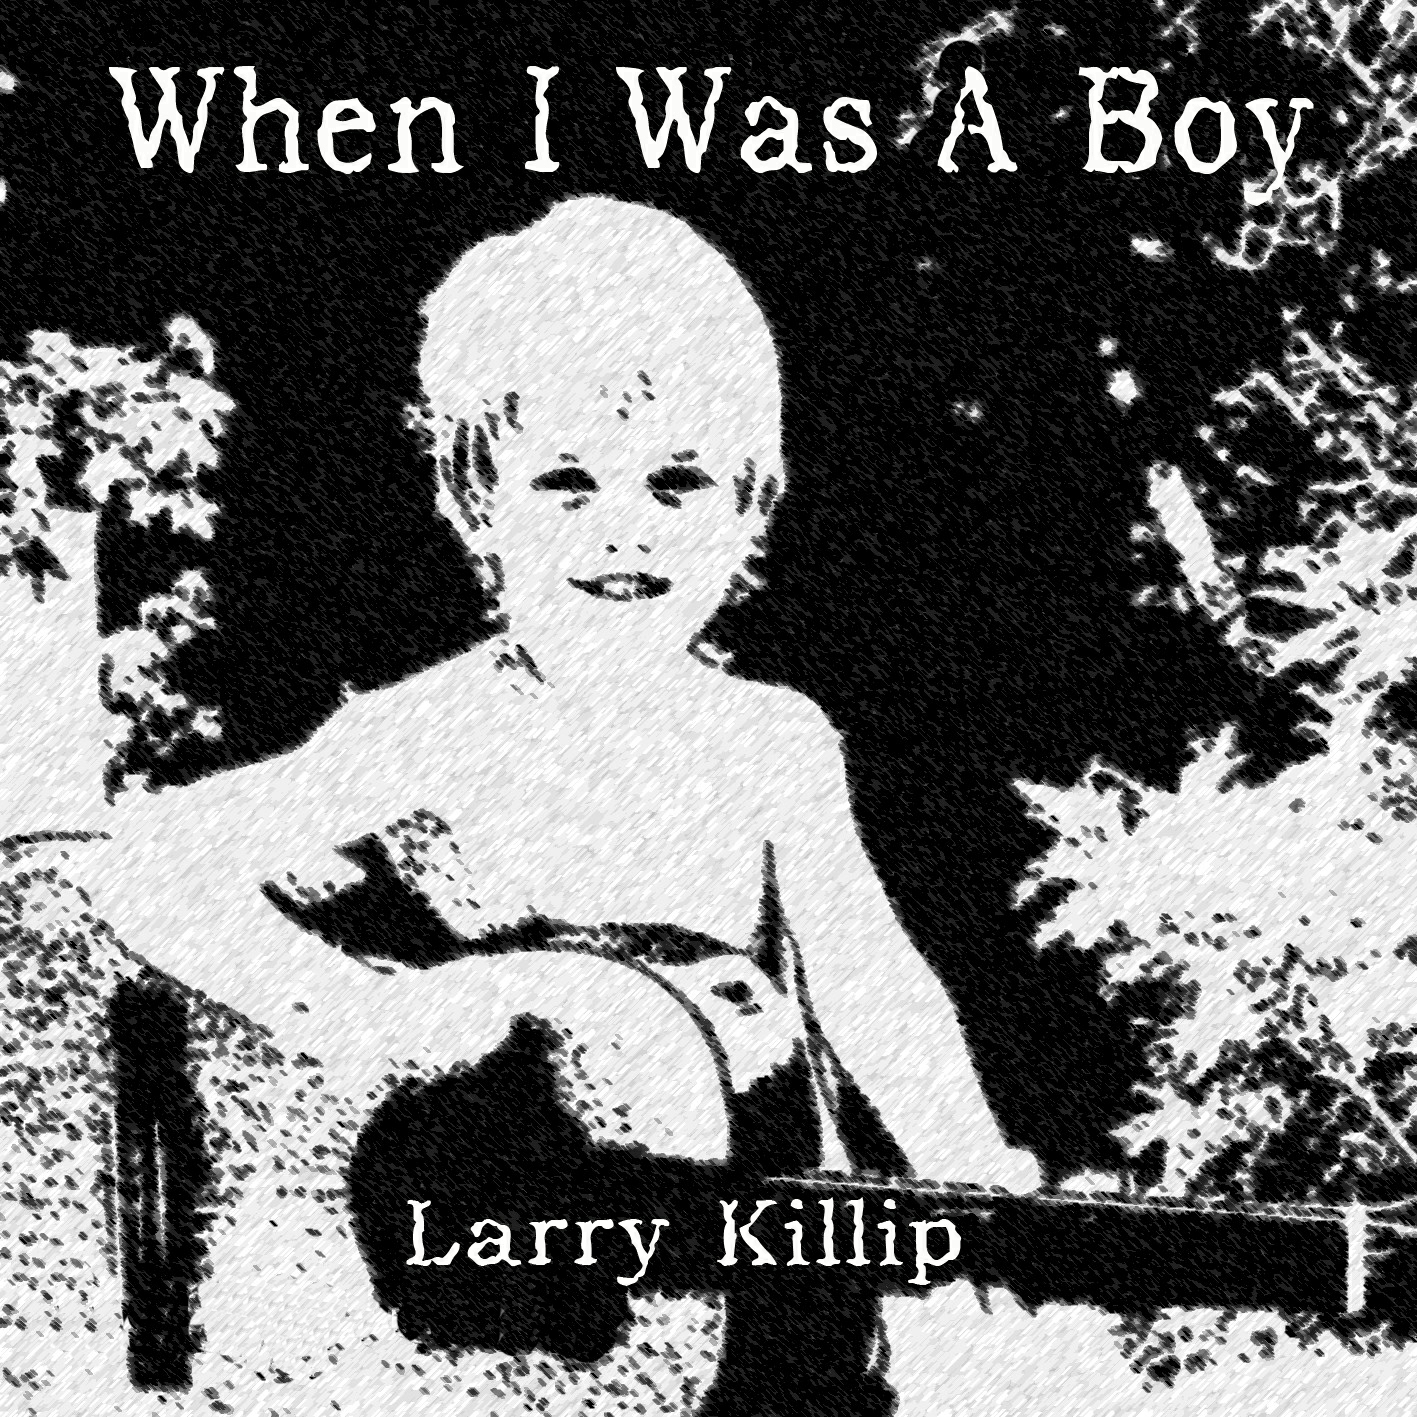 When I Was A Boy by Larry Killip